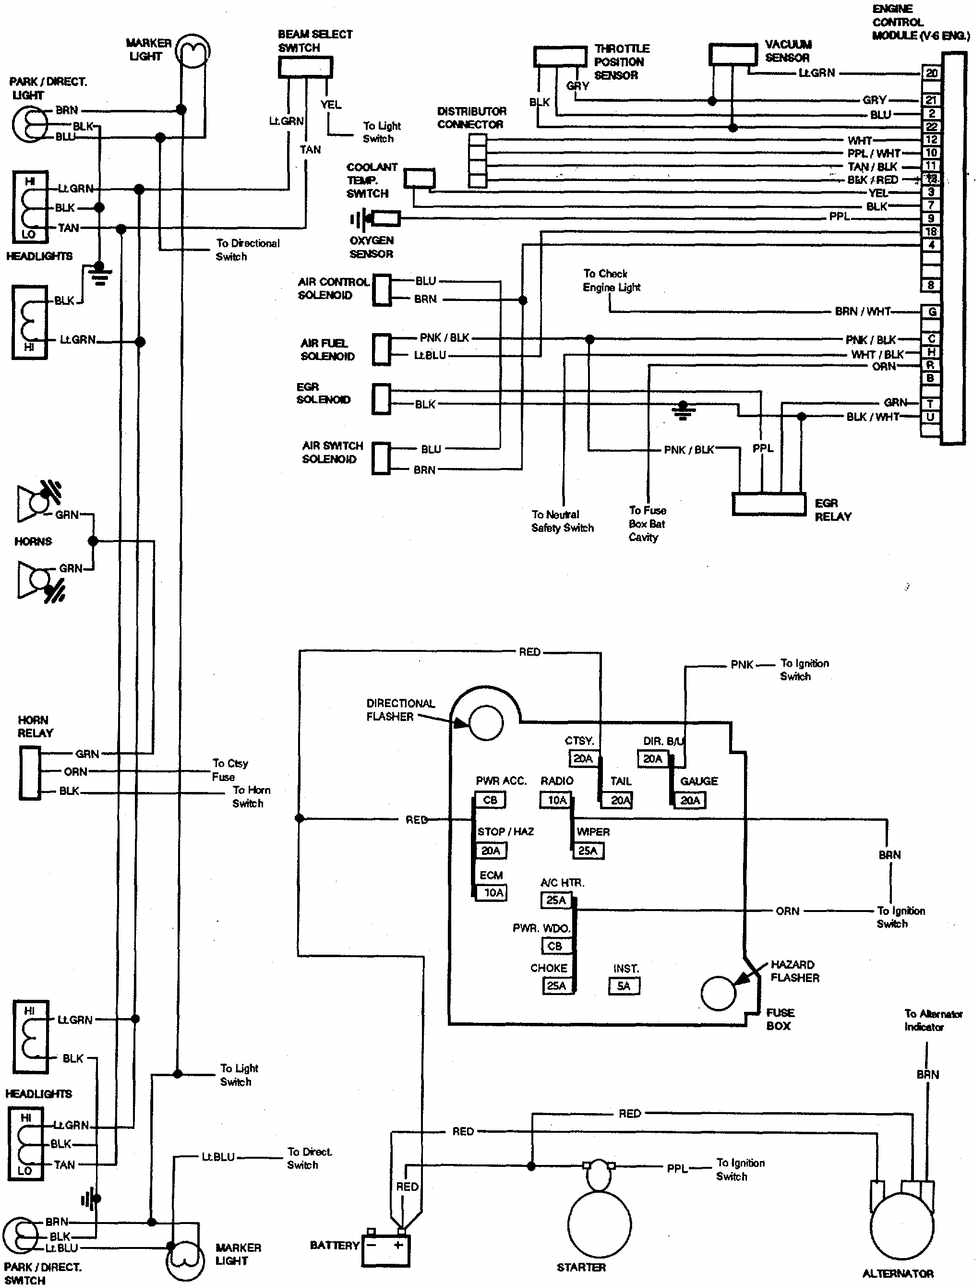 Cooling Fan Wire Diagram 2006 Ford Crown Victoria moreover 1994 Ford Contour Engine Diagram Html likewise Chrysler Pt Cruiser Fuse Box Diagram as well Boost leak guide also Chevrolet V8 Trucks 1981 1987. on 2000 mustang gt fan relay